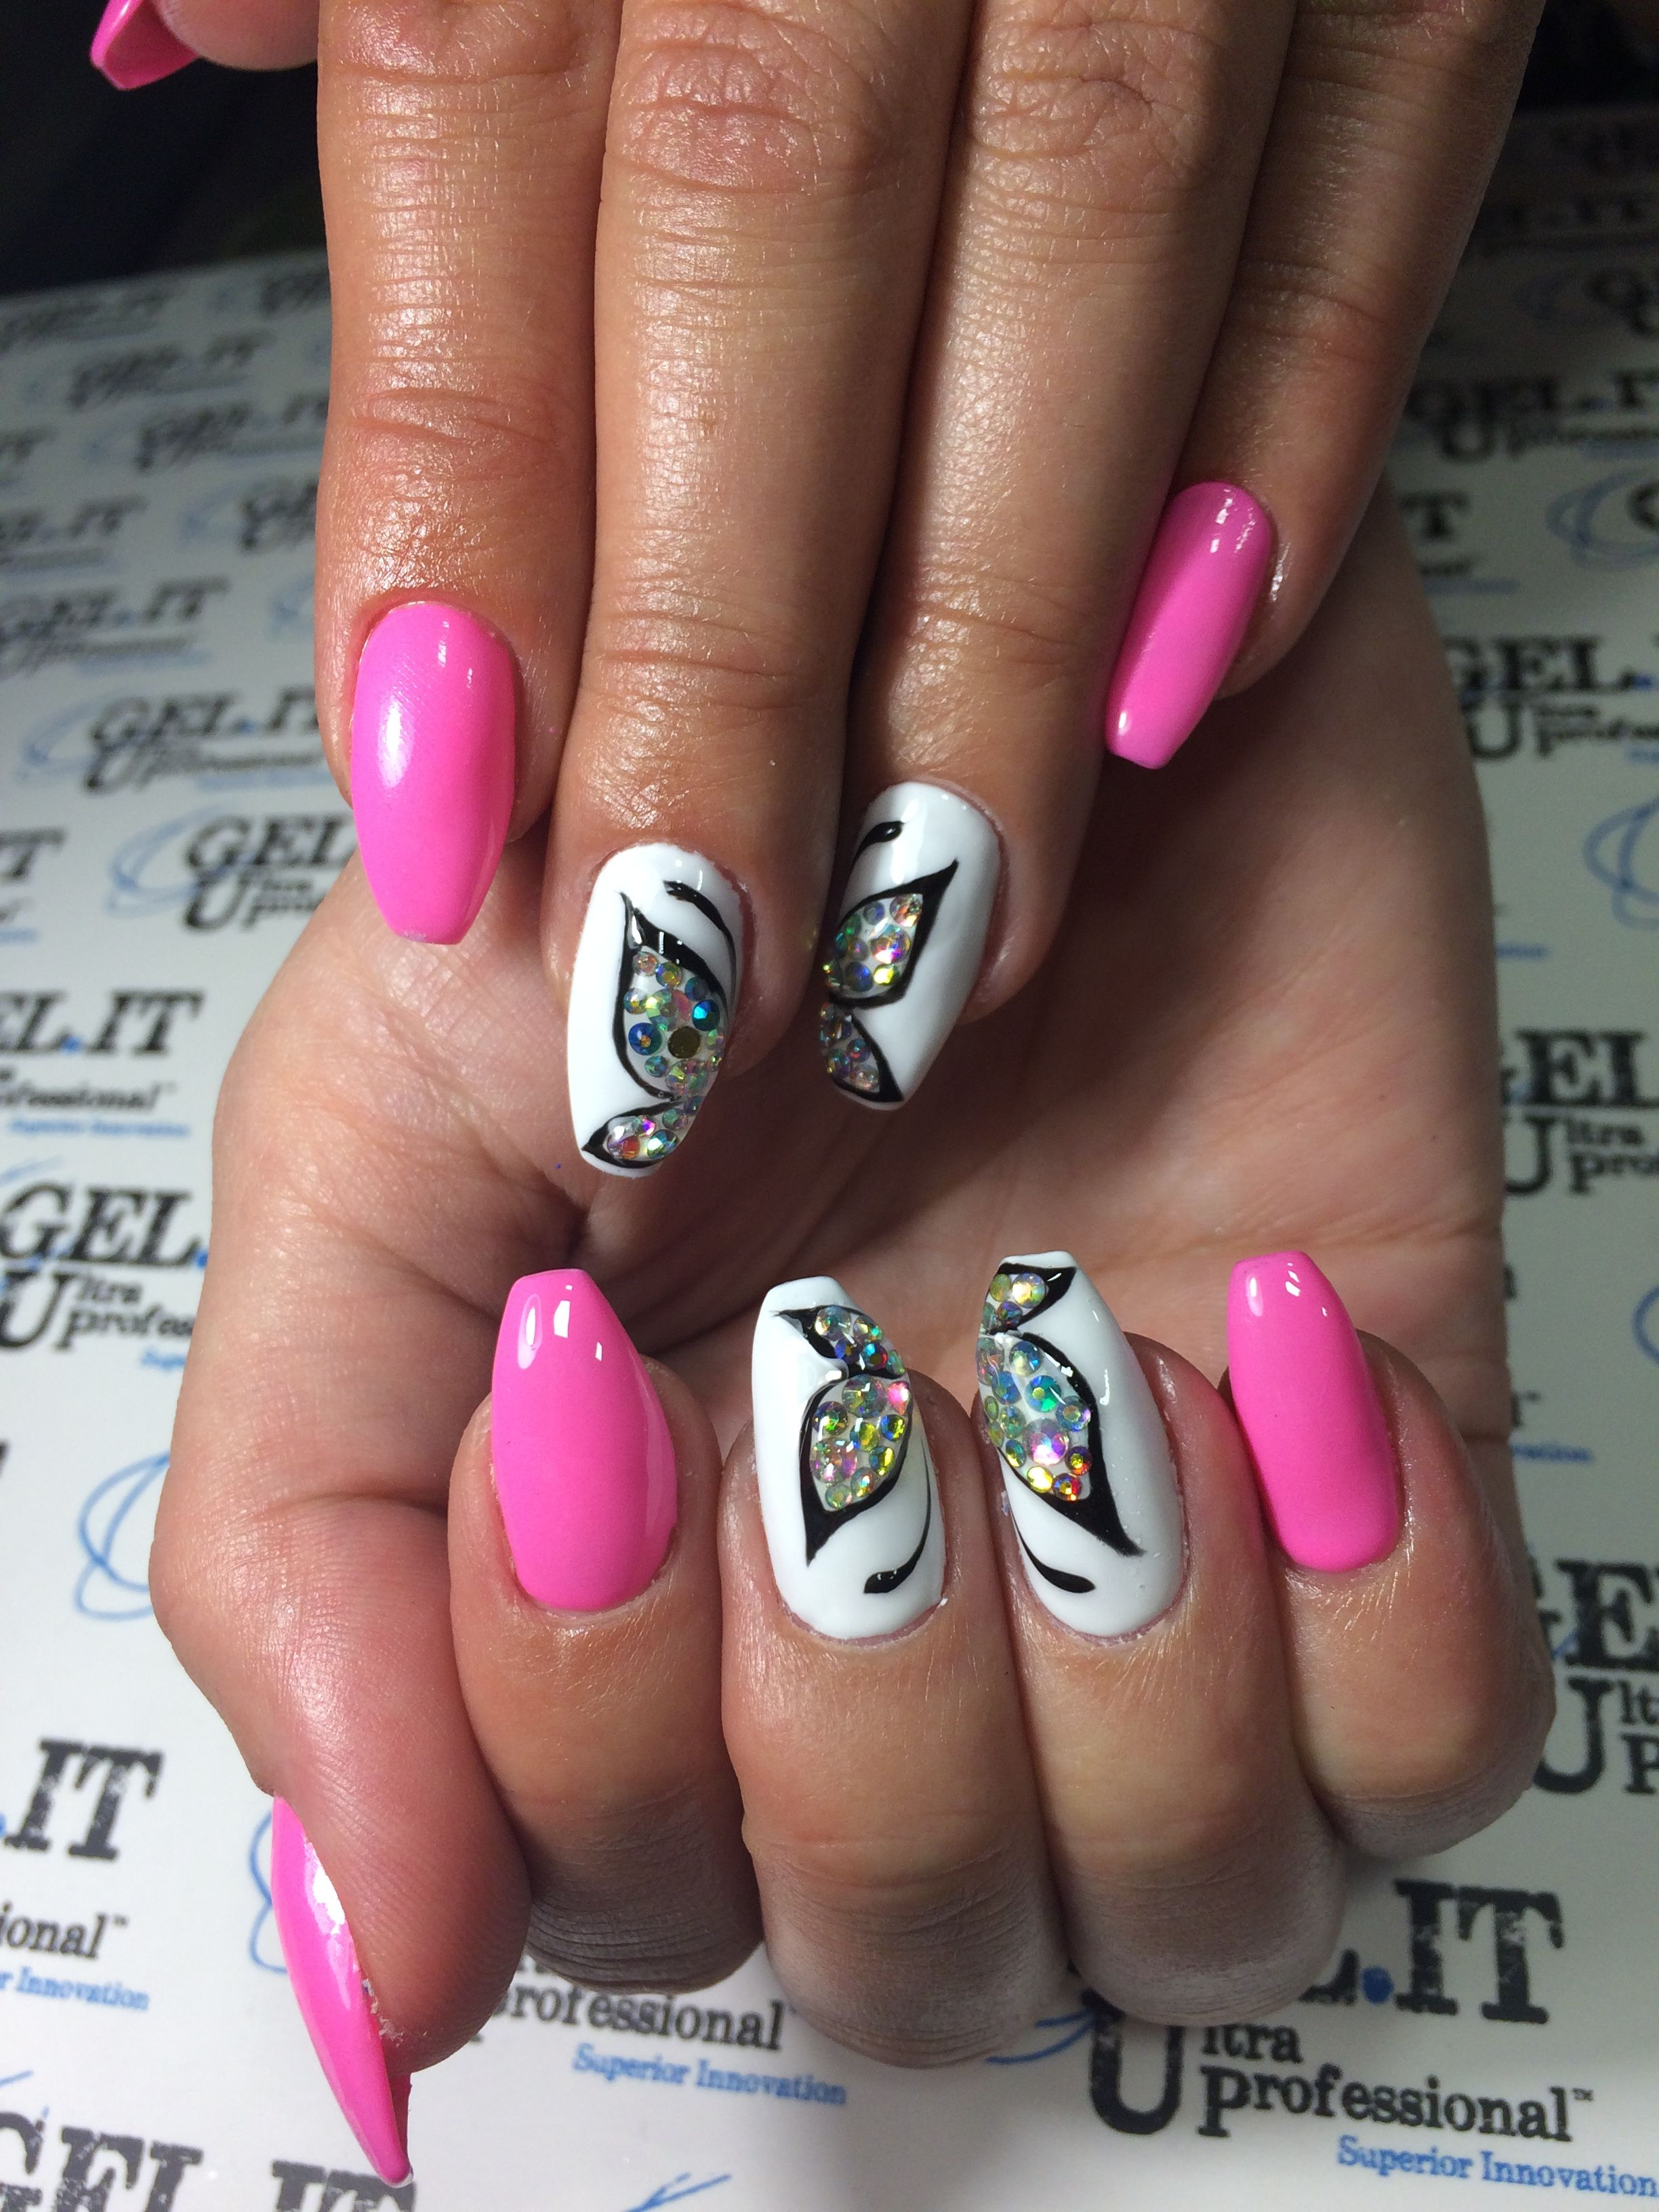 Nails, nail art, nail design, pink nails, spring 2017